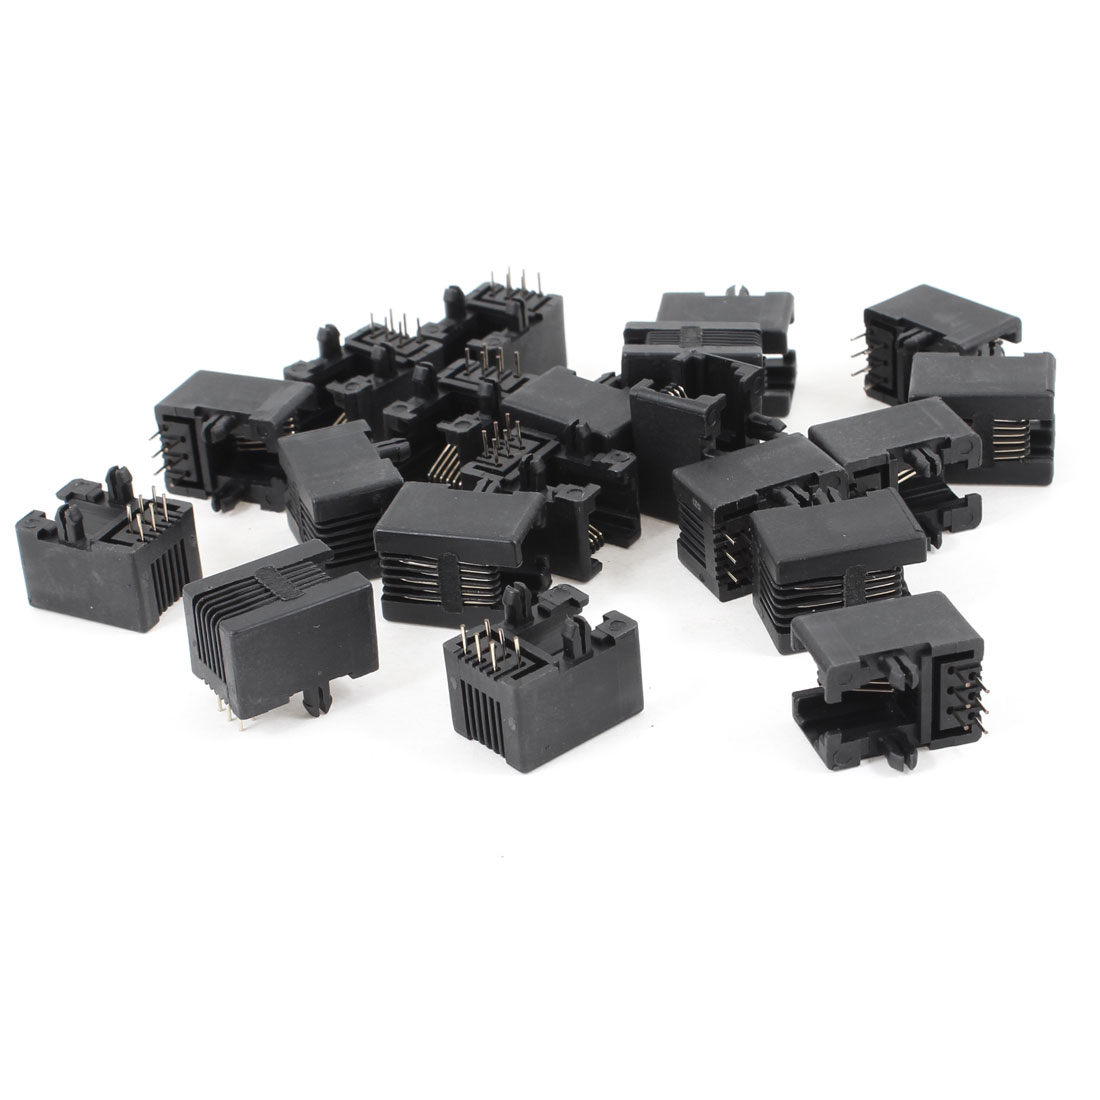 20 Pcs 90 Degree 6 Round Pin RJ12 6P6C Network Modular PCB Connector Jacks Black